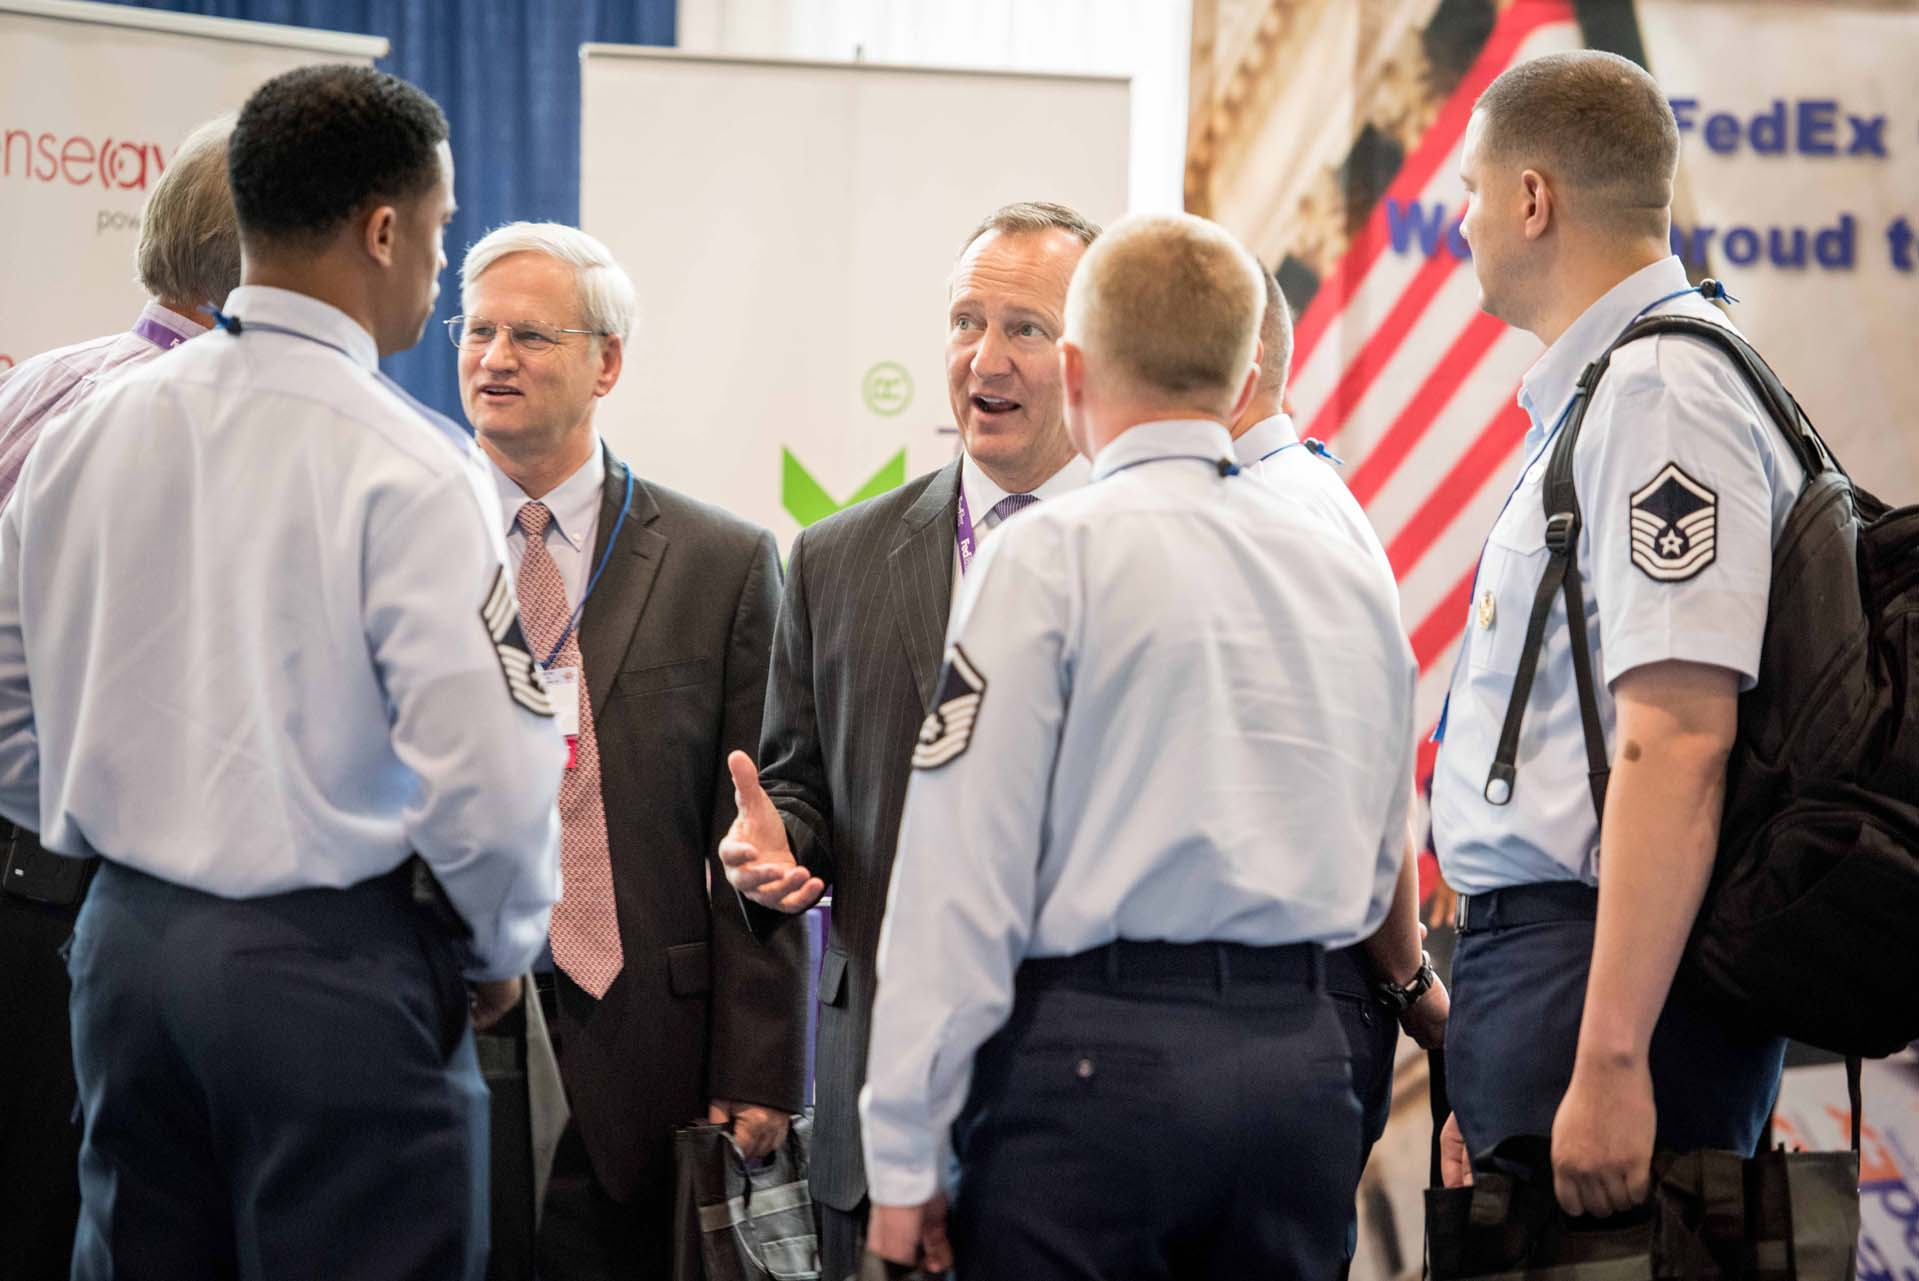 150929_NDTA-2015-Conference-Lunch-073